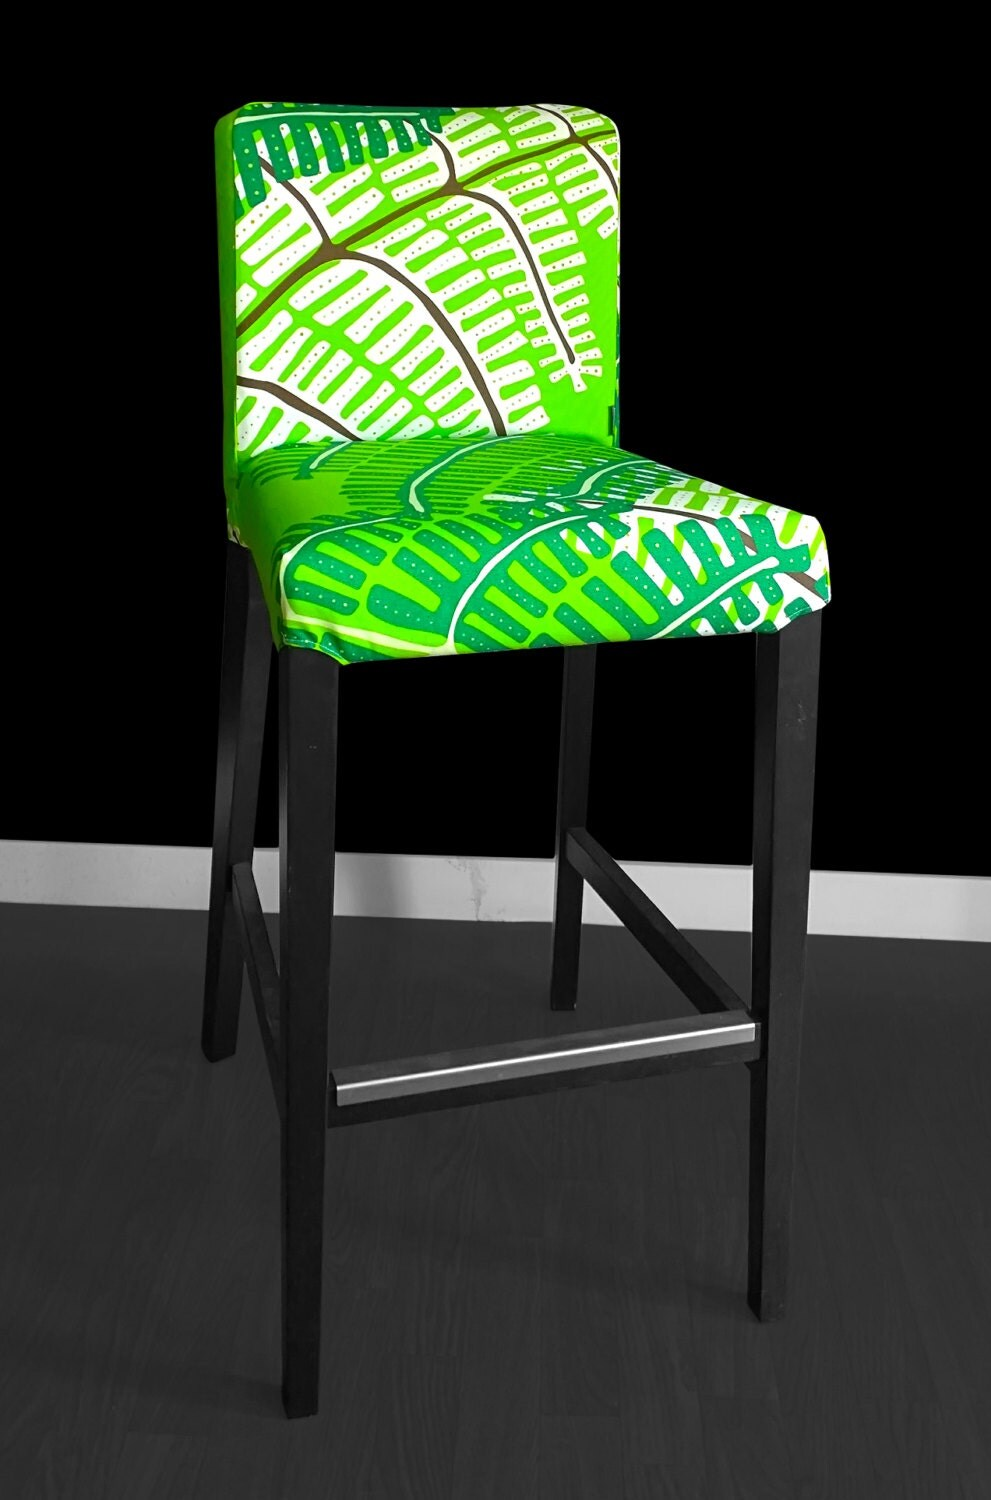 Sale Pair Of Henriksdal Bar Stool Chair Covers Green Fern